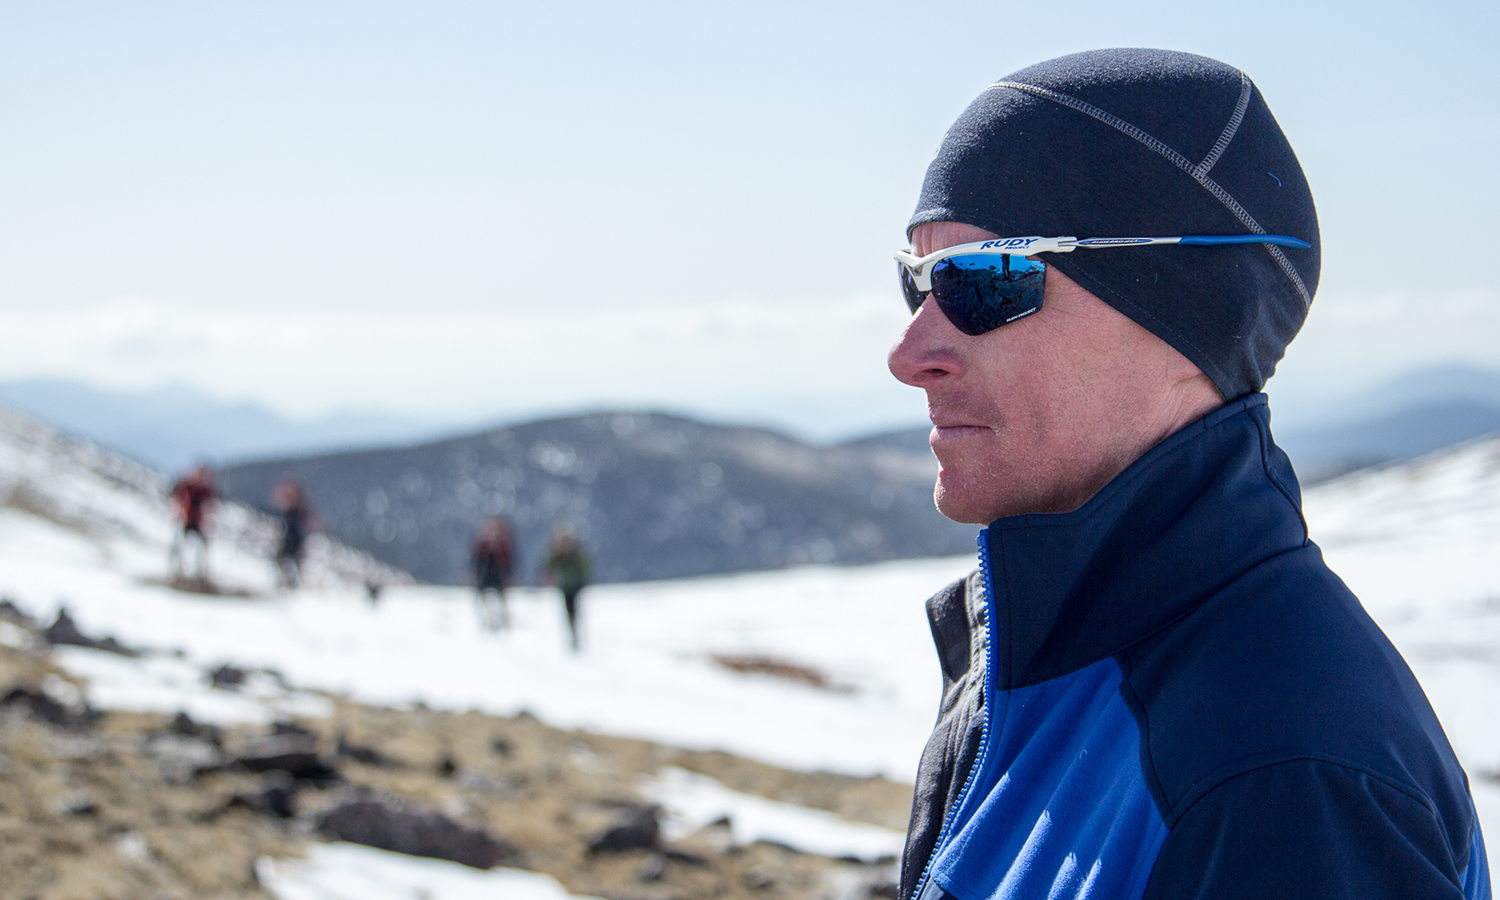 Profile image of craig, current soldier, in sunglasses, blue hat and blue jacket looking out ahead.